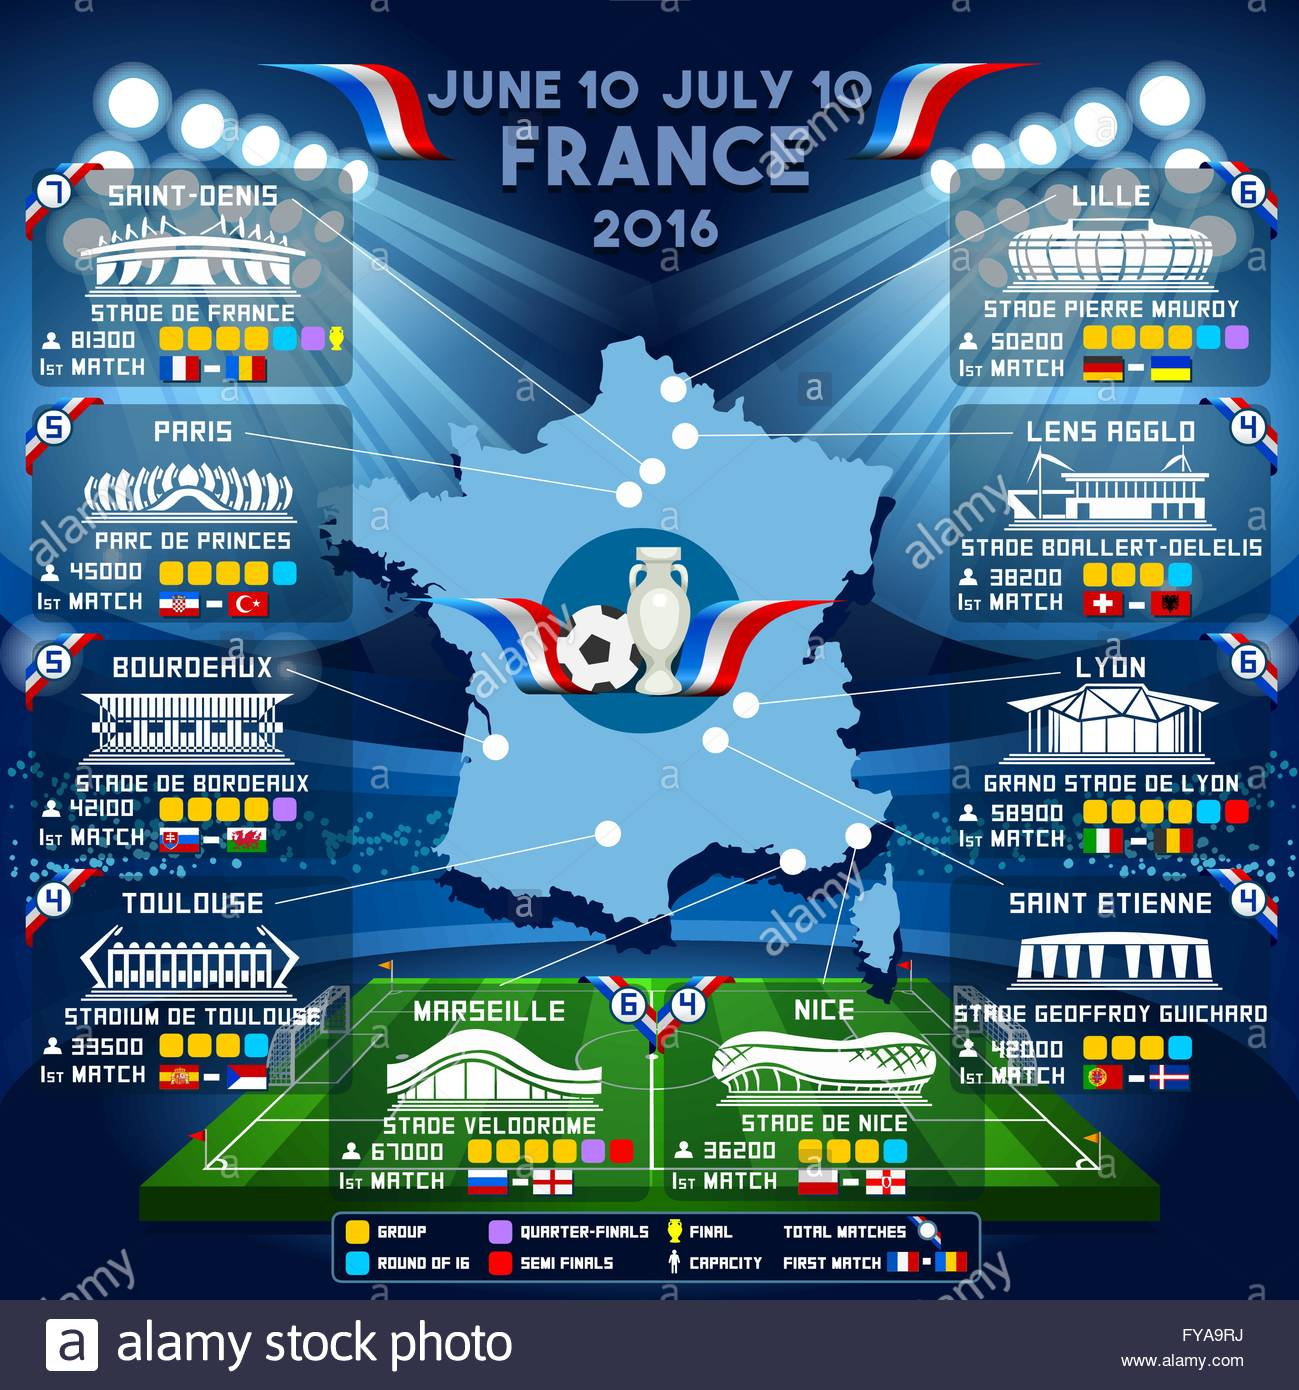 Cup EURO 2016 finals Stadium Guide. Football European Championship Soccer  finals place. Stade de France final match group stage. f8fb19de3170c